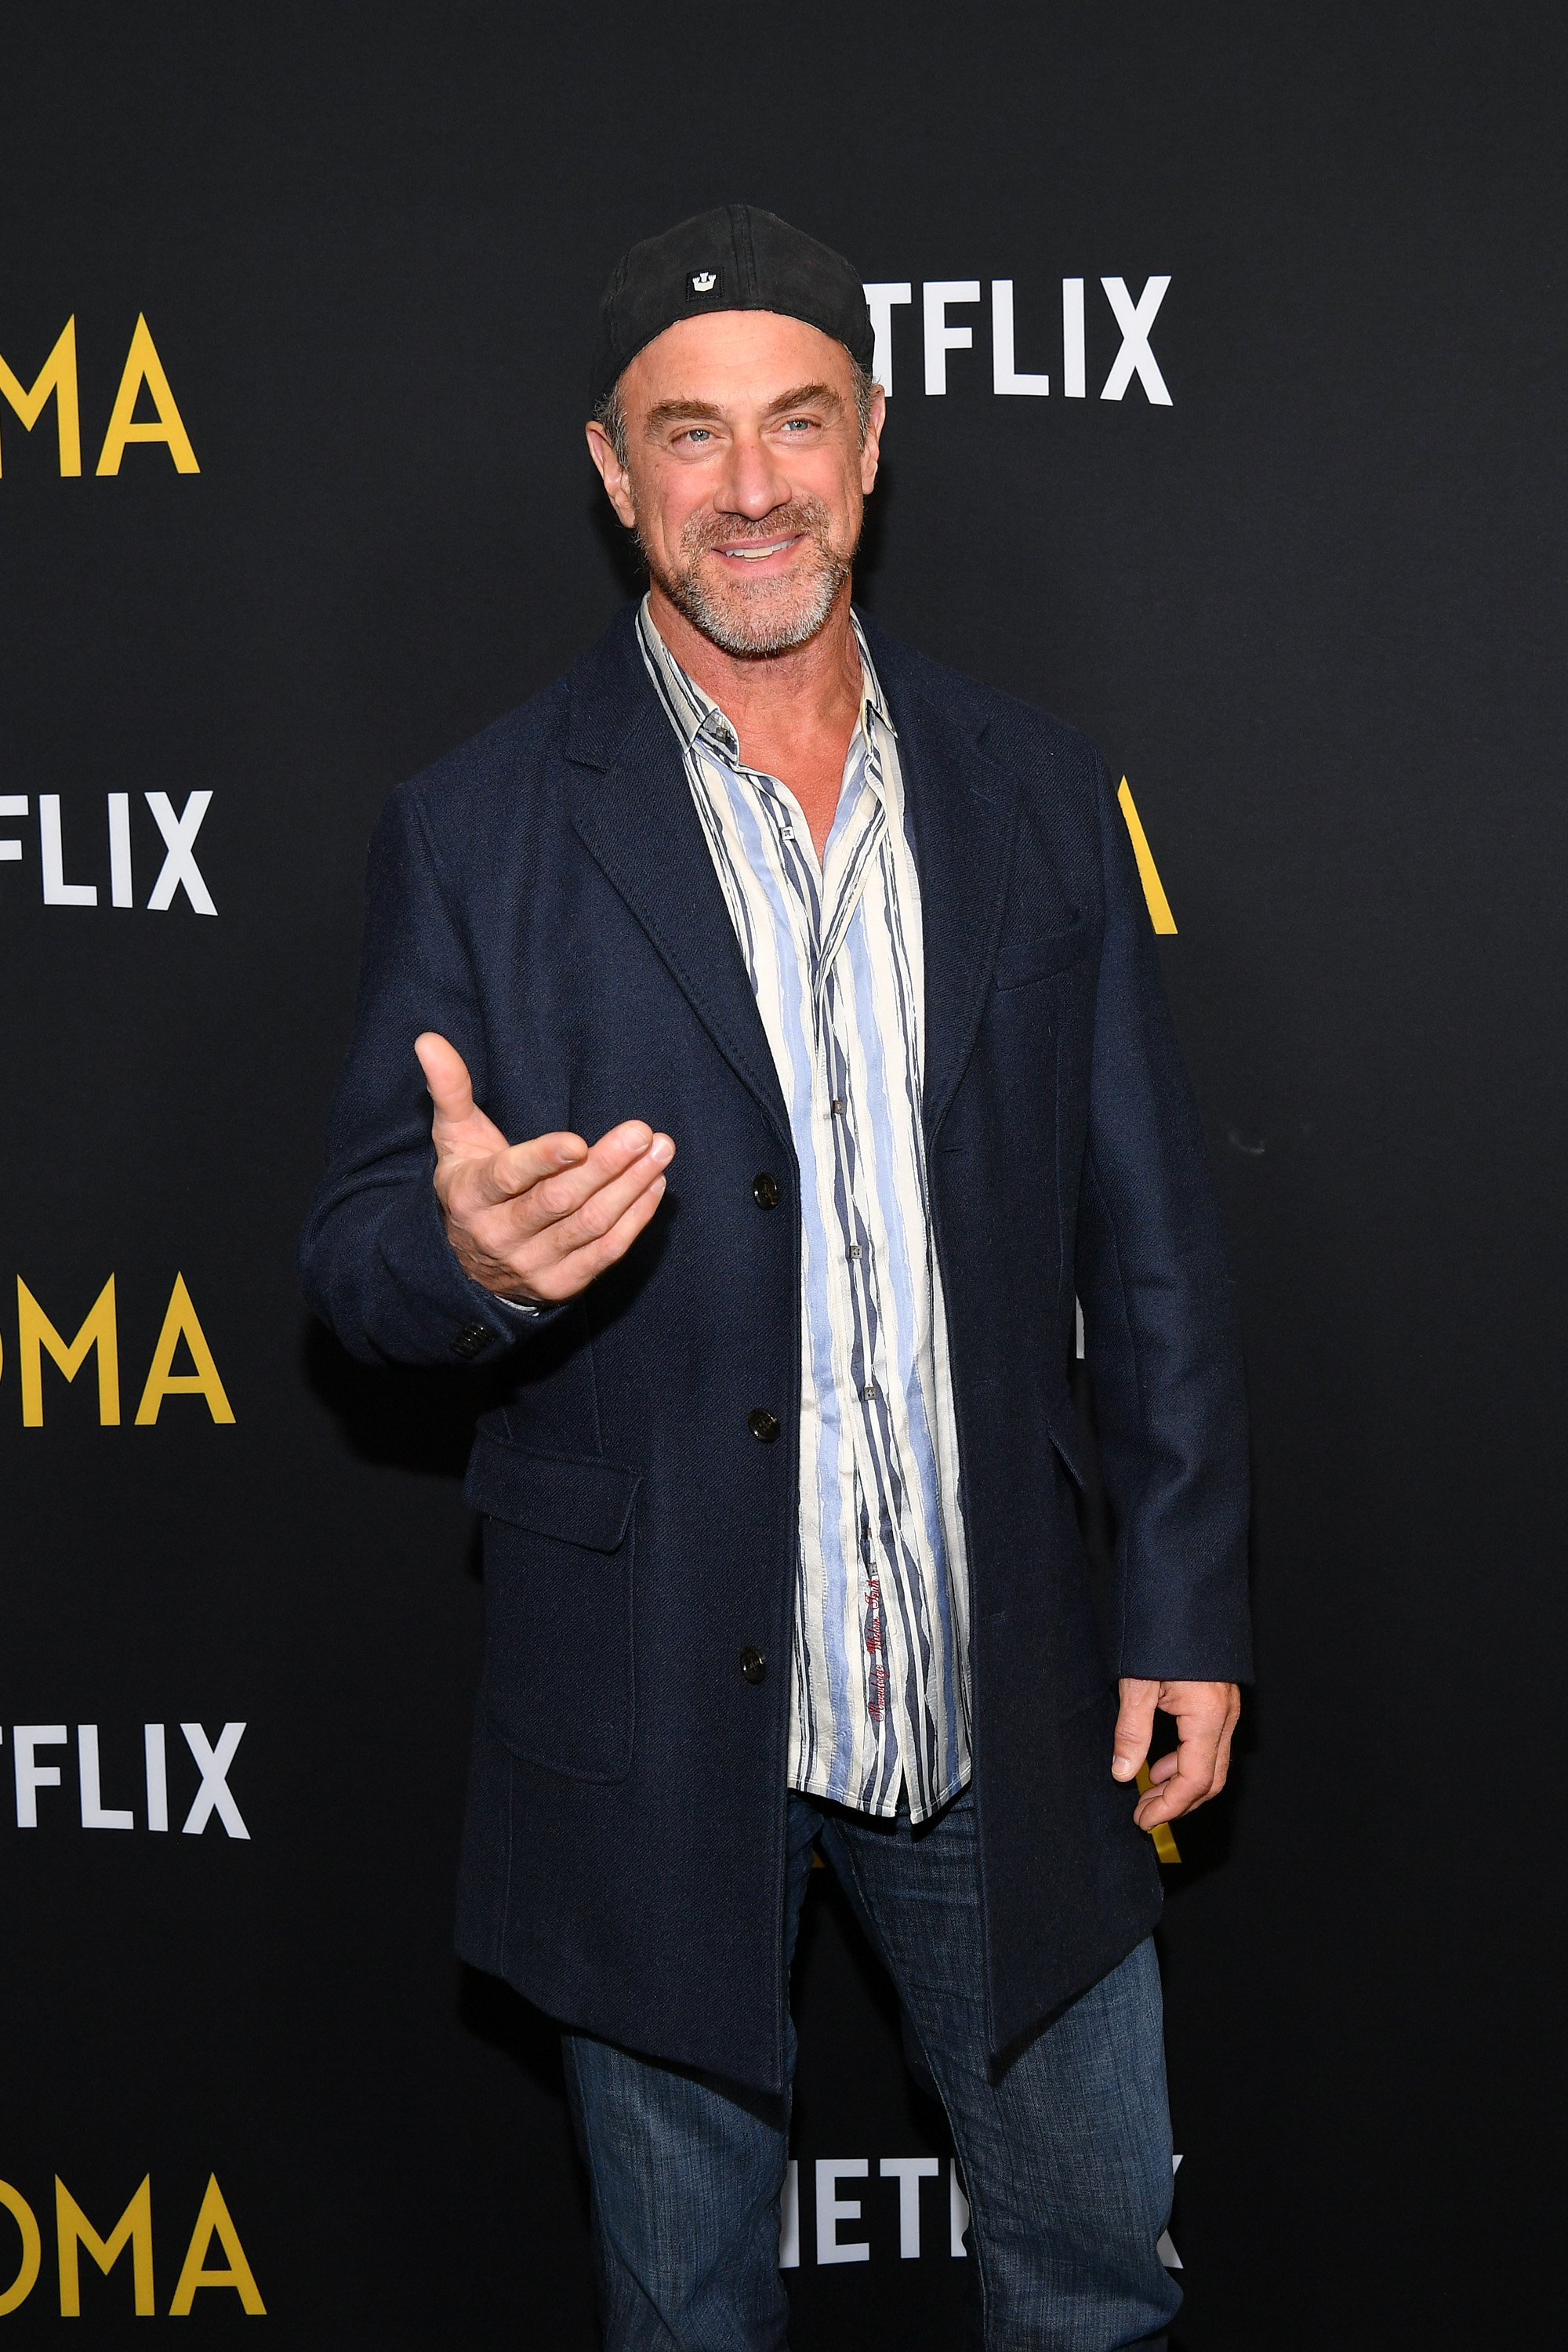 """Christopher Meloni attends the """"Roma"""" New York screening at DGA Theater on November 27, 2018. 